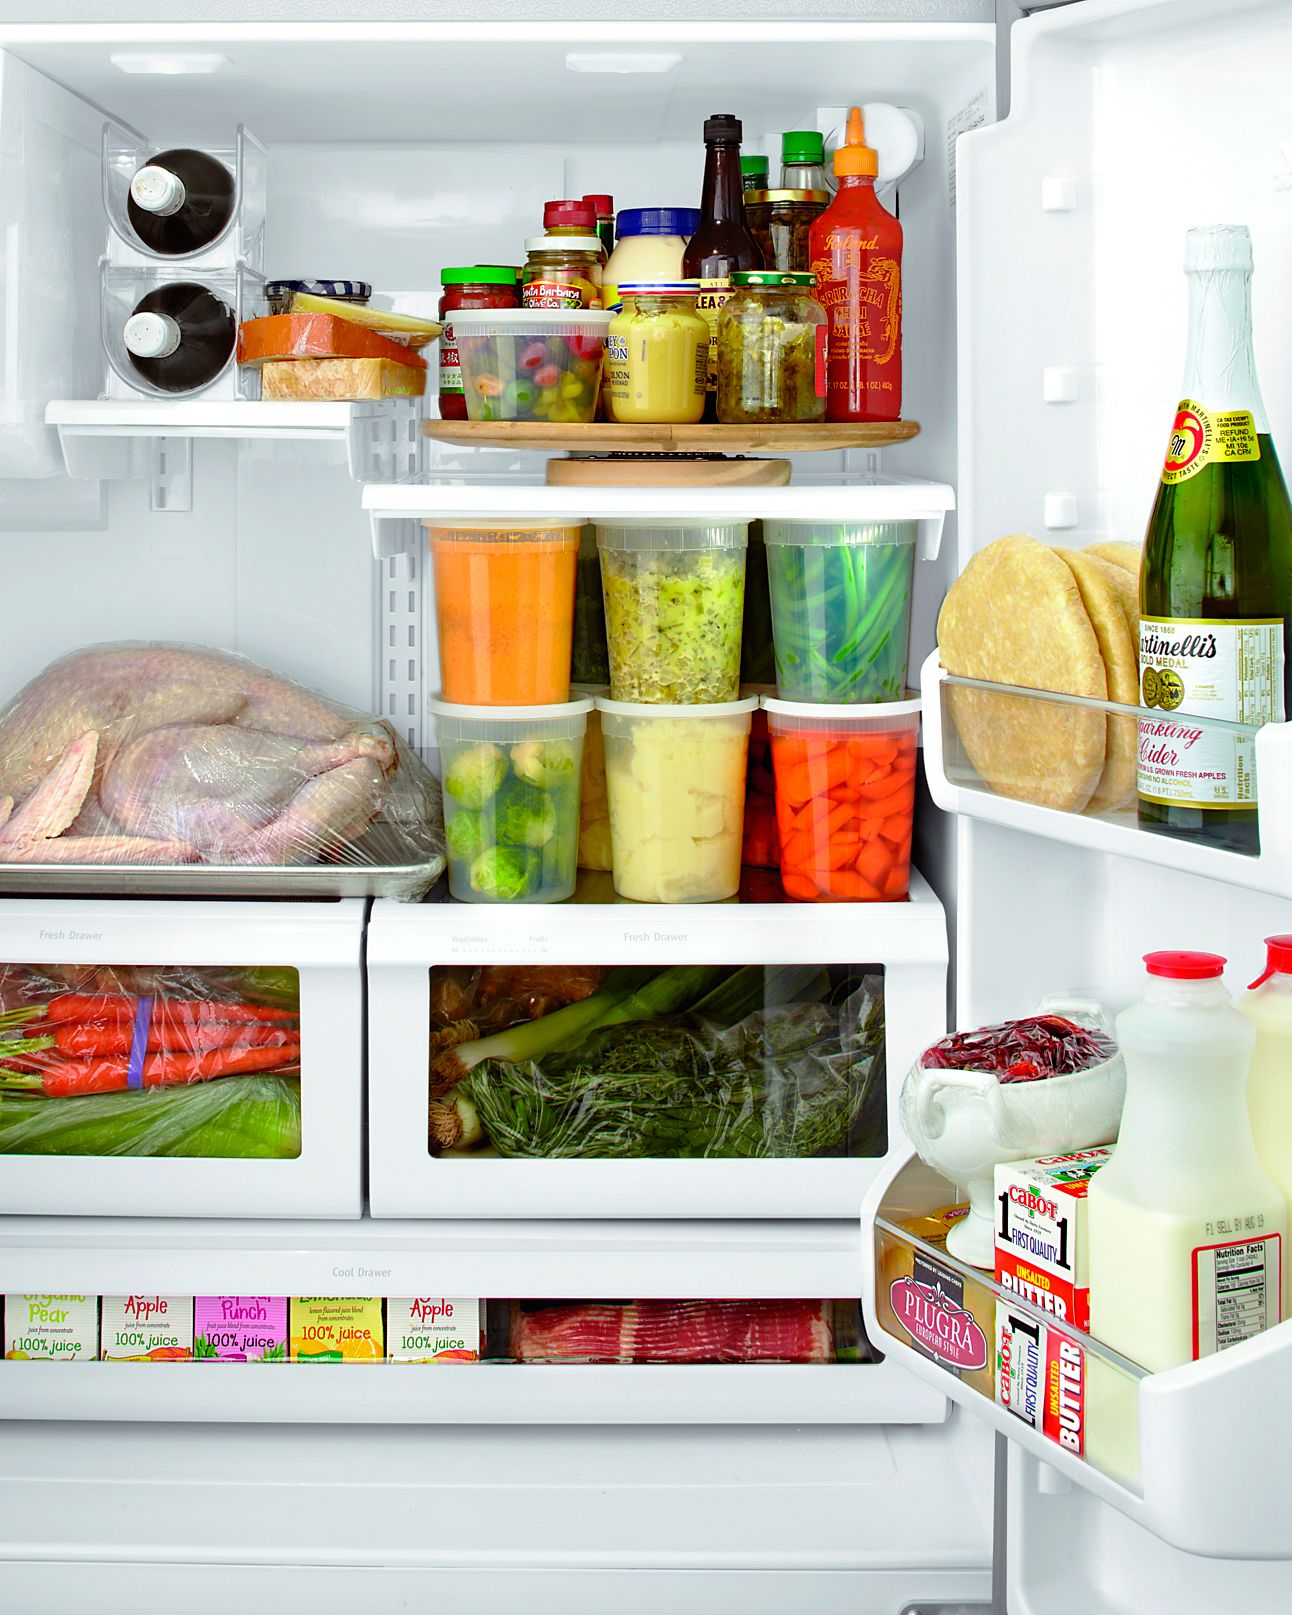 Organize Your Kitchen Cabinets In Nine Easy Steps In 2020 Small Fridges Hosting Thanksgiving Homekeeping